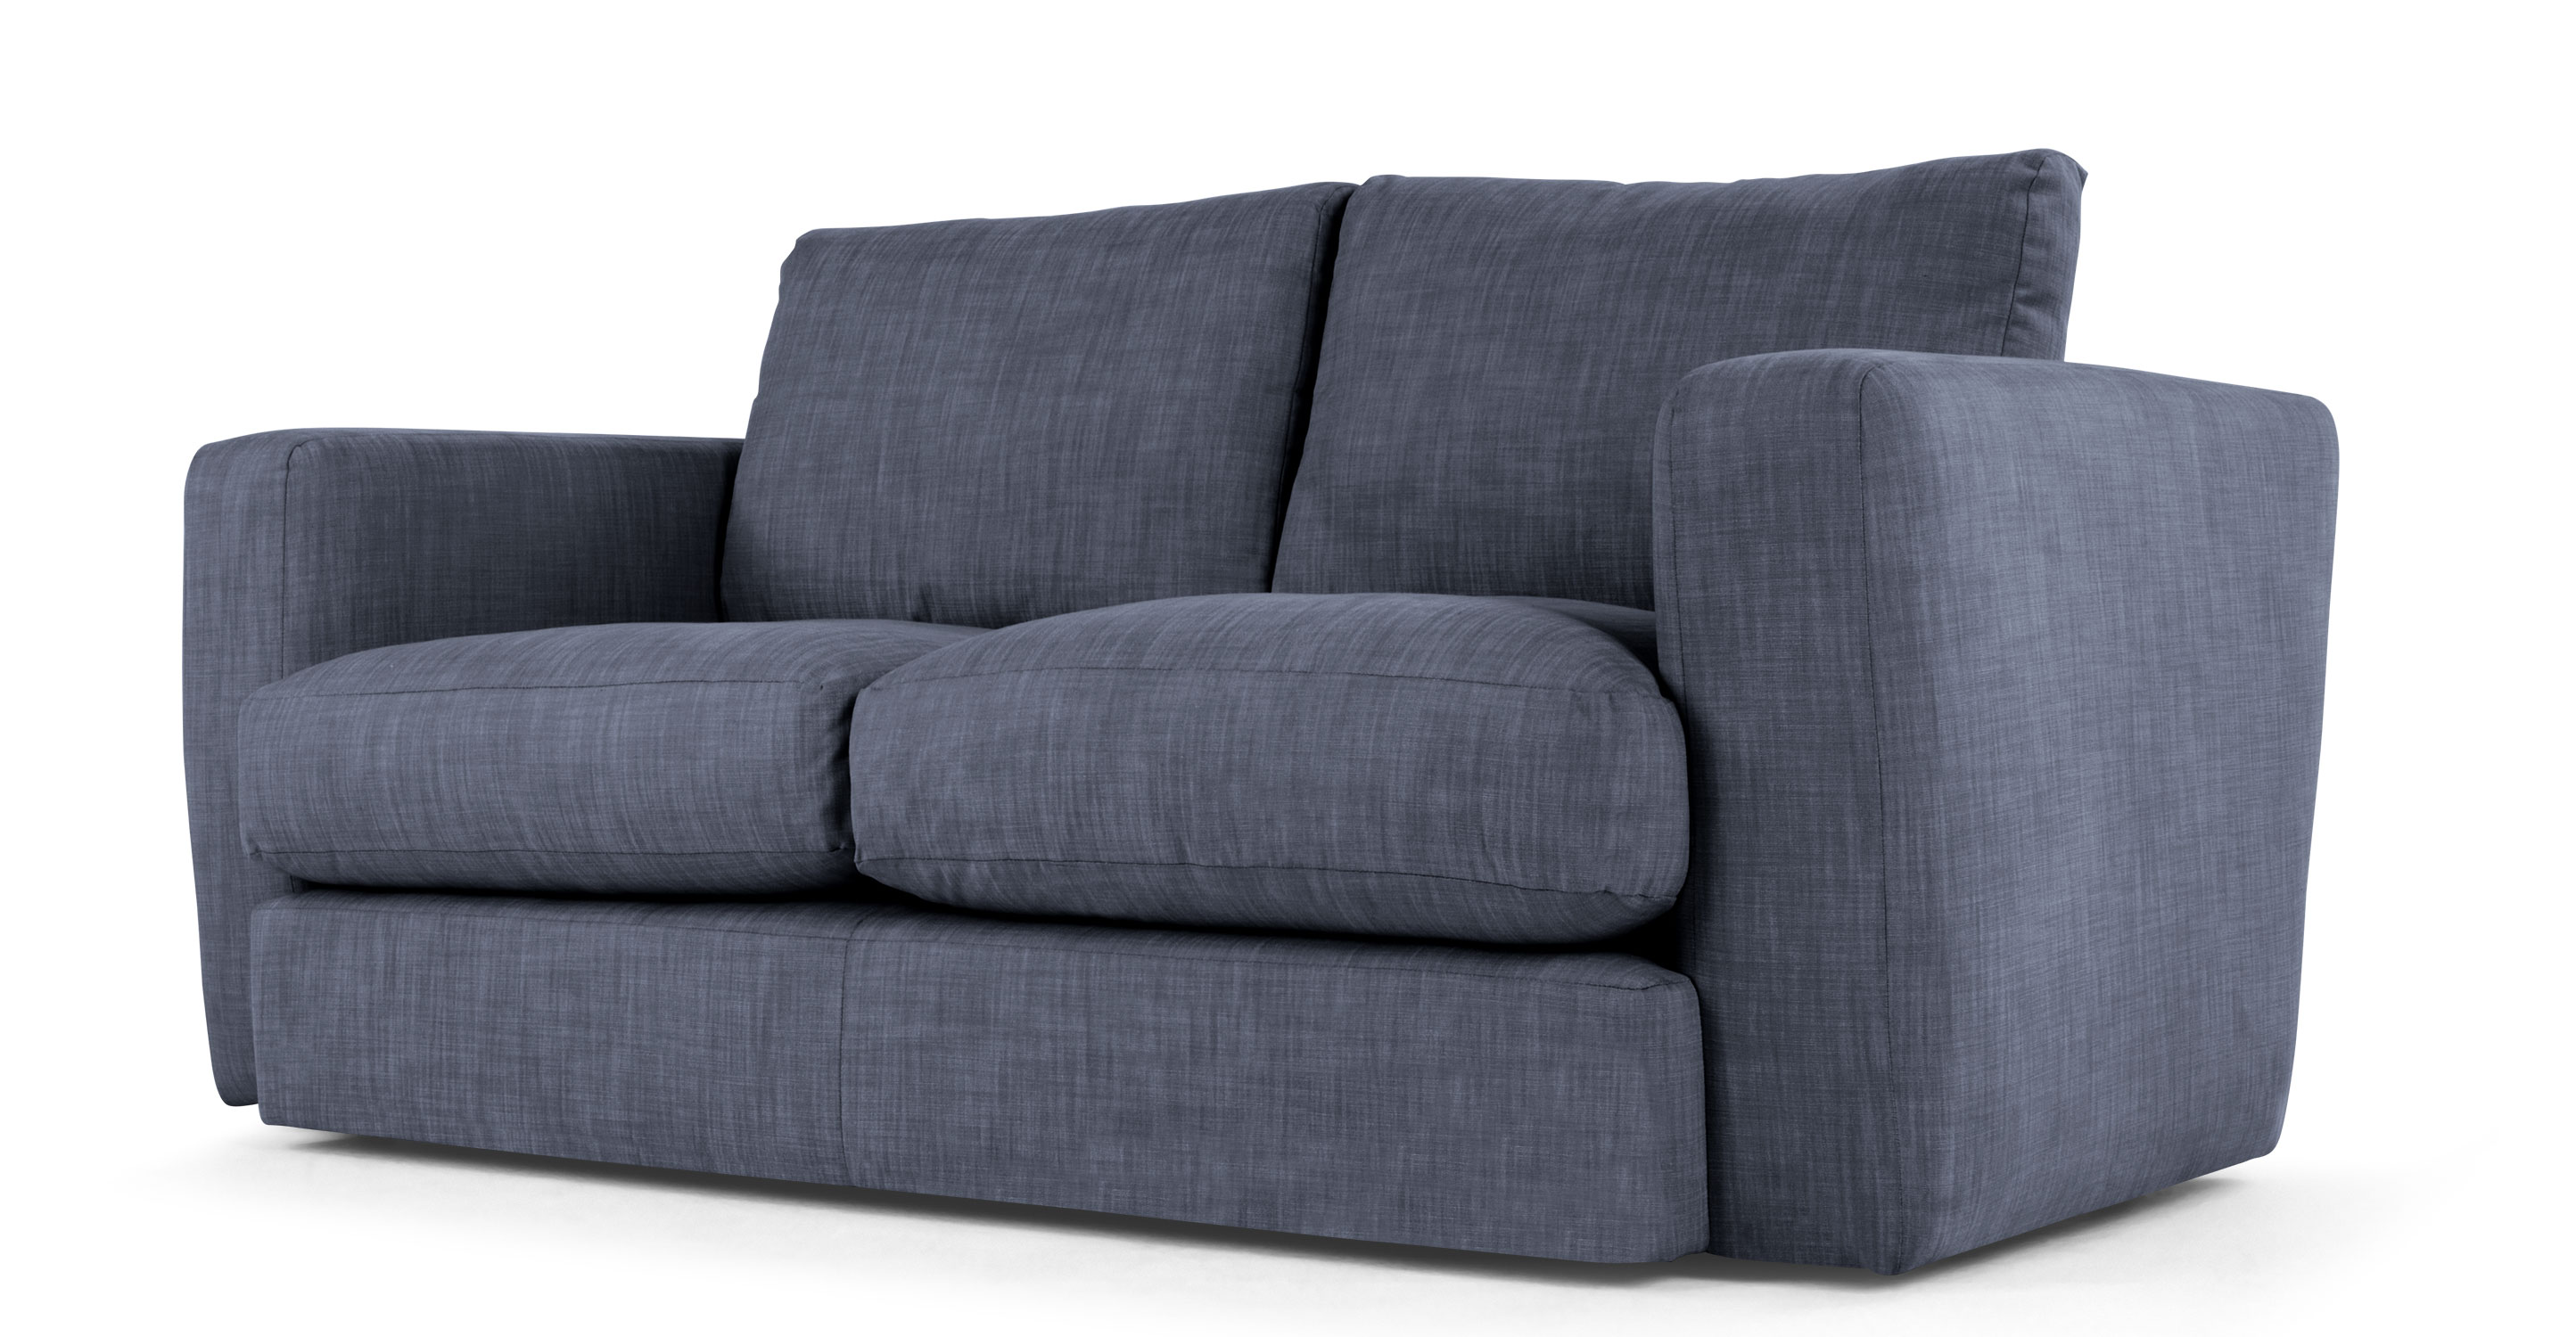 Walter 2 seater sofa denim Denim loveseat